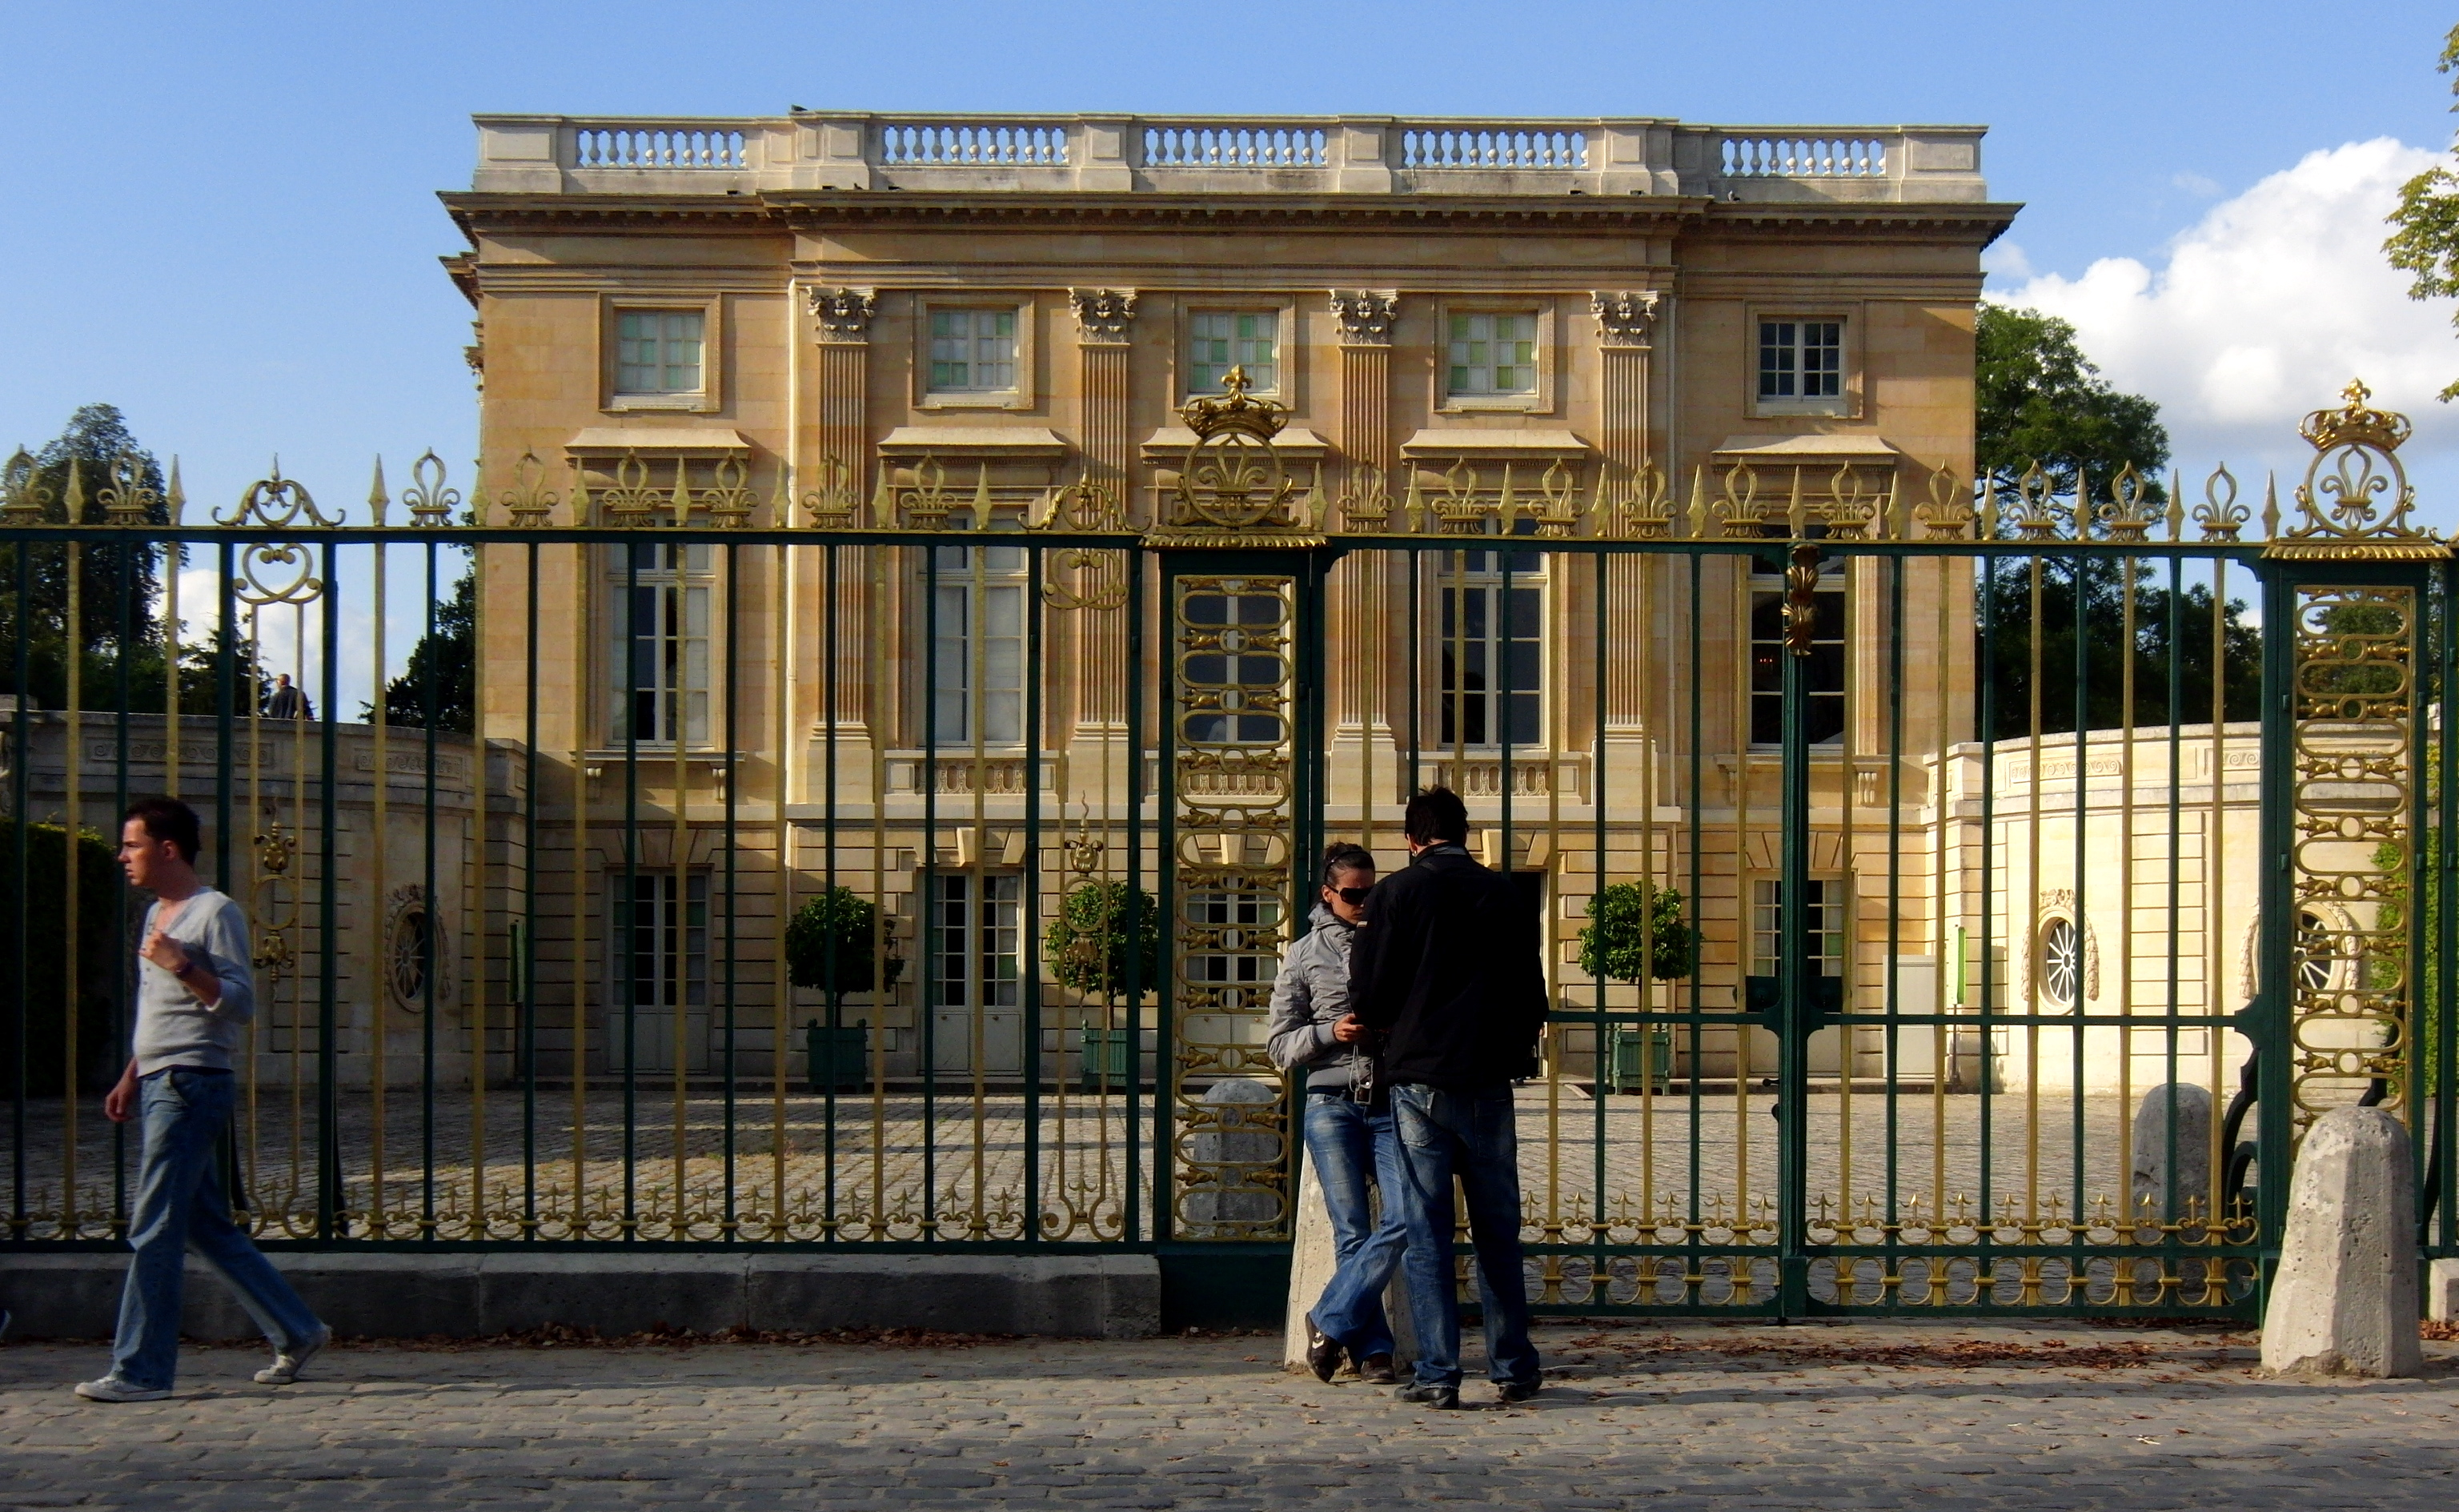 French Neoclassical Architecture further French Neoclassical Architecture additionally The Art Deco Style The French Architecture a57 further Architecture Of Ancient Greece likewise Mansion De Lujo En Grecia. on neoclassical architecture home